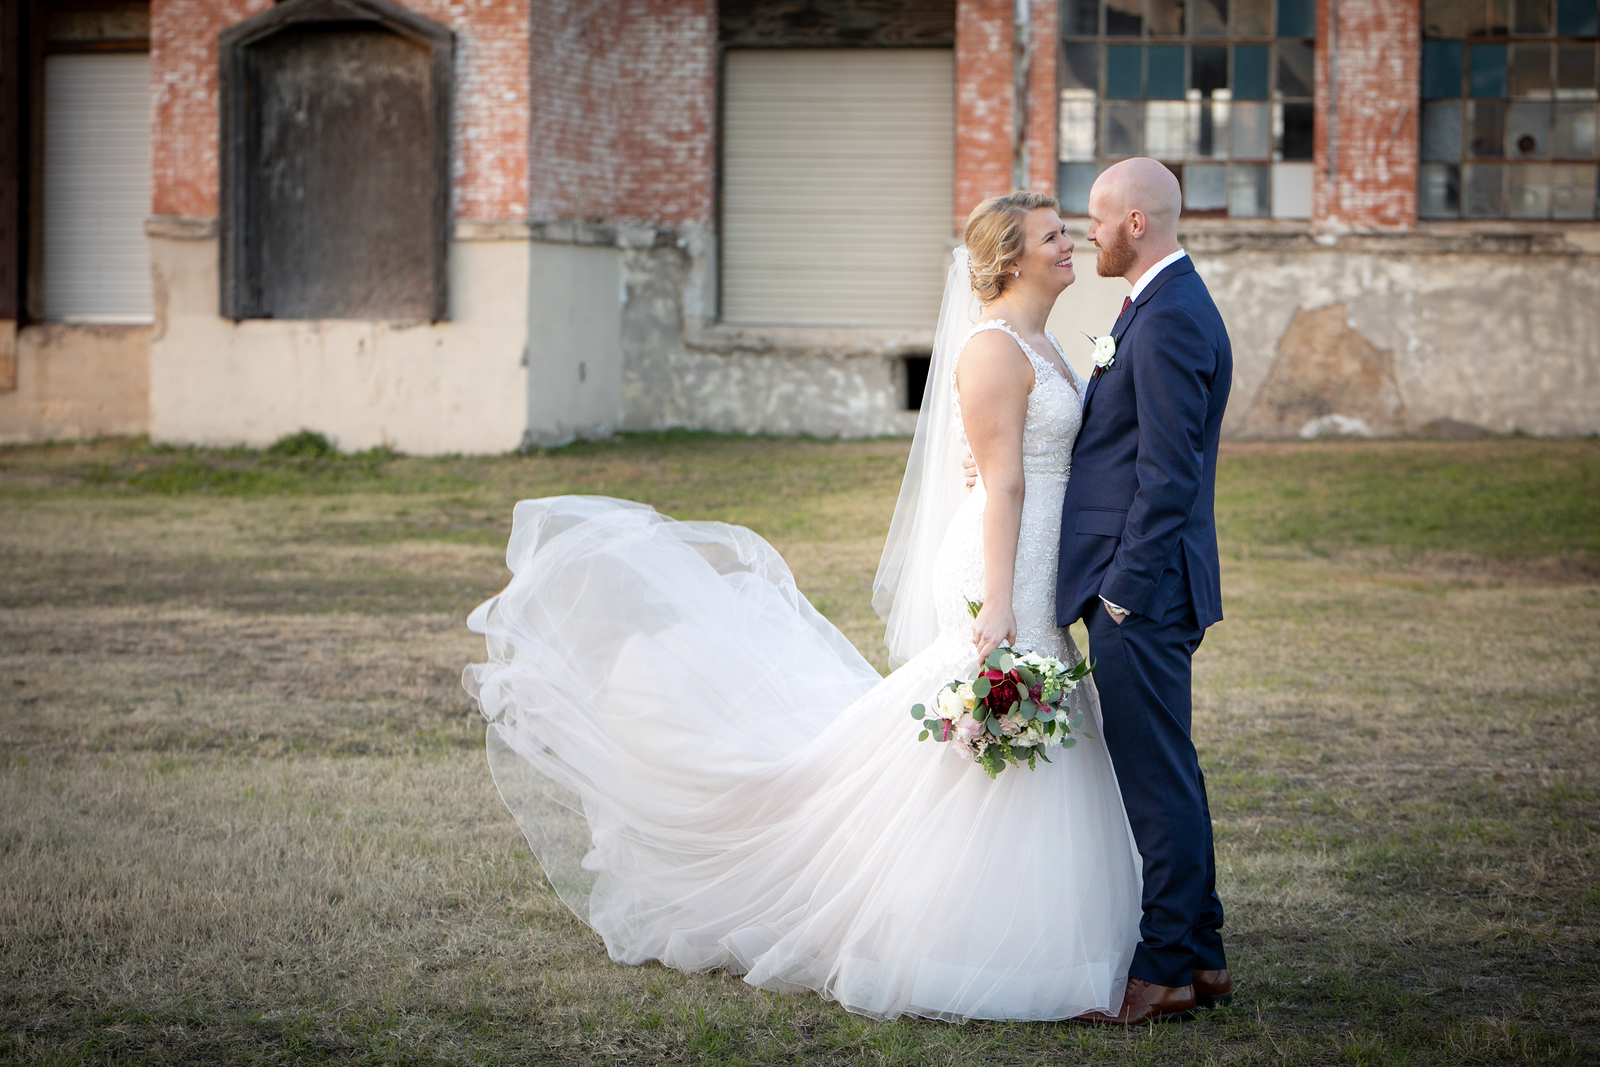 newlywed couple standing in front of a warehouse looking at each other